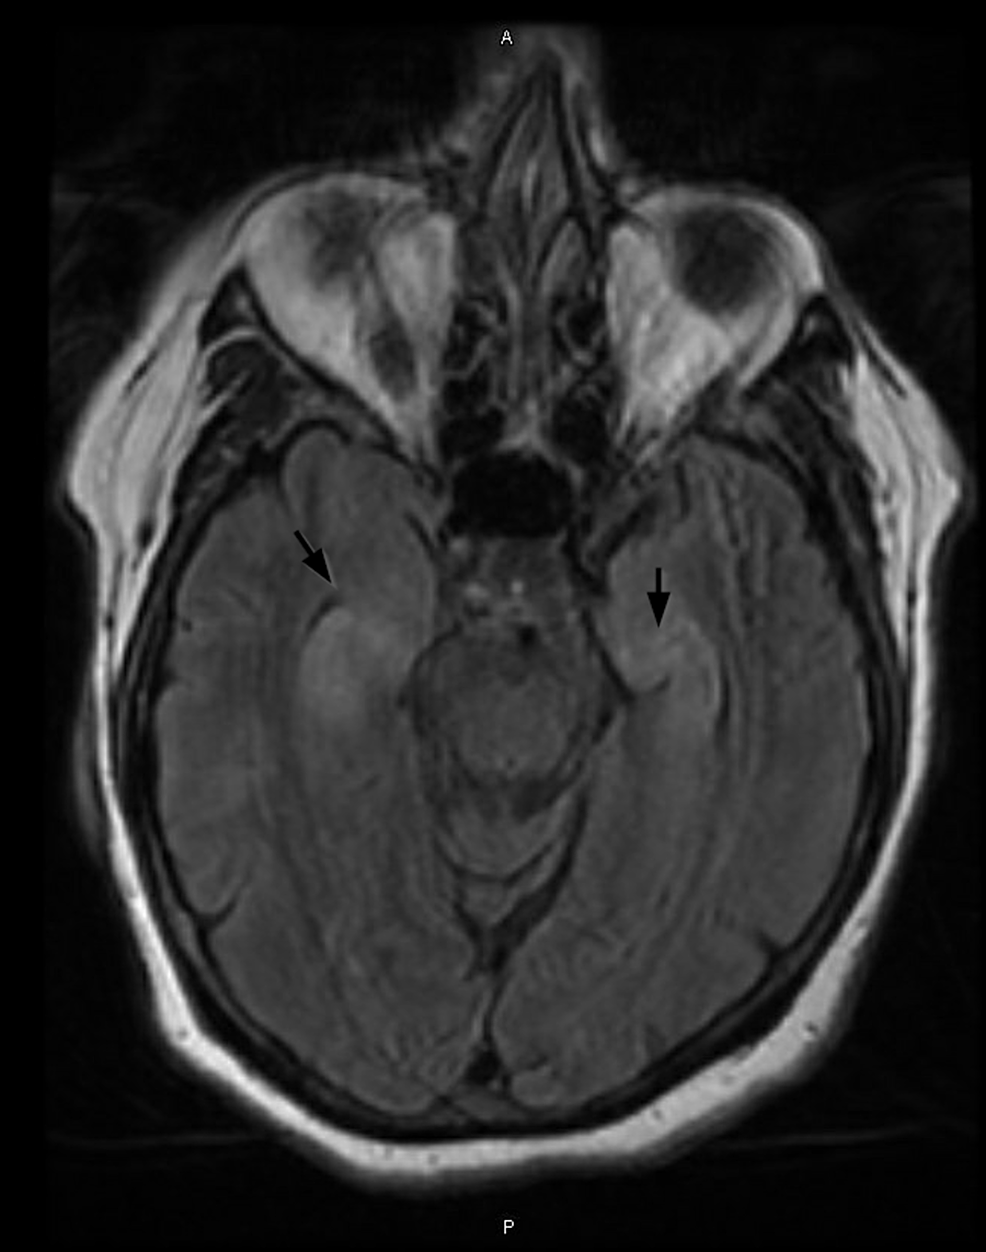 Relatively-symmetric-T2-prolongation-and-swelling-of-the-bilateral-hippocampal-structures.